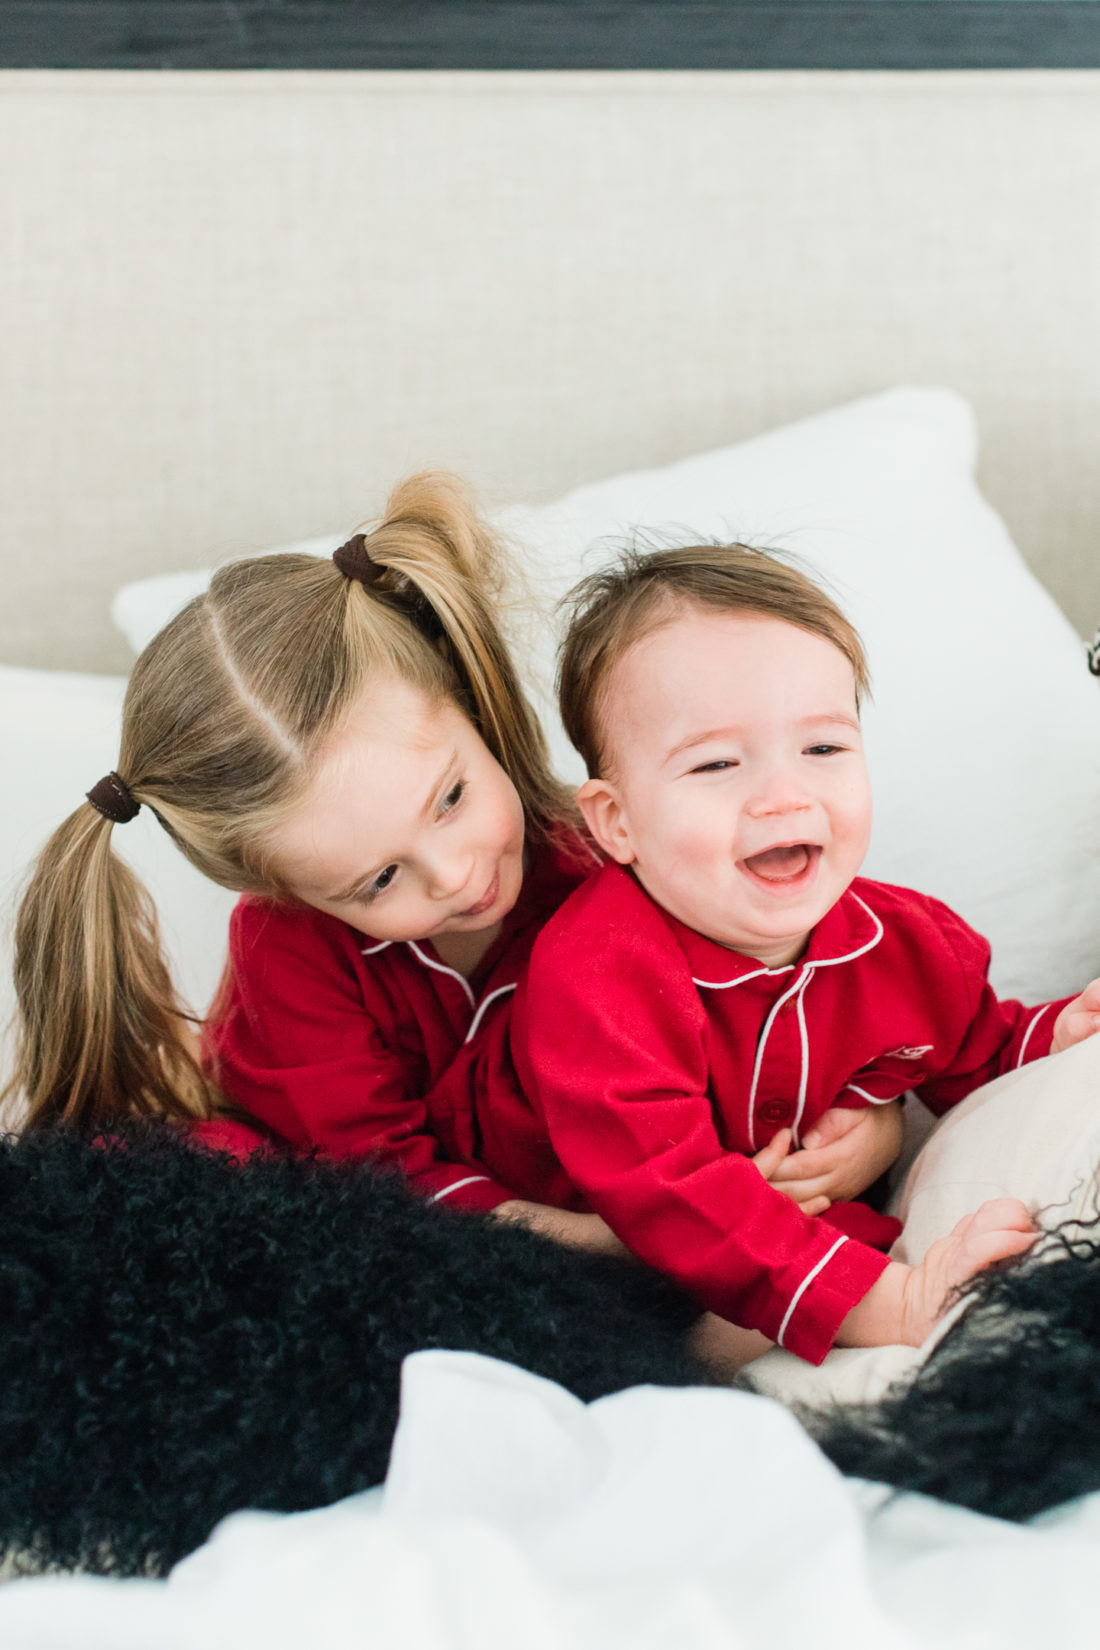 Marlowe Martino laughs and wrestles with little brother Major in the master bedroom of their Connecticut home